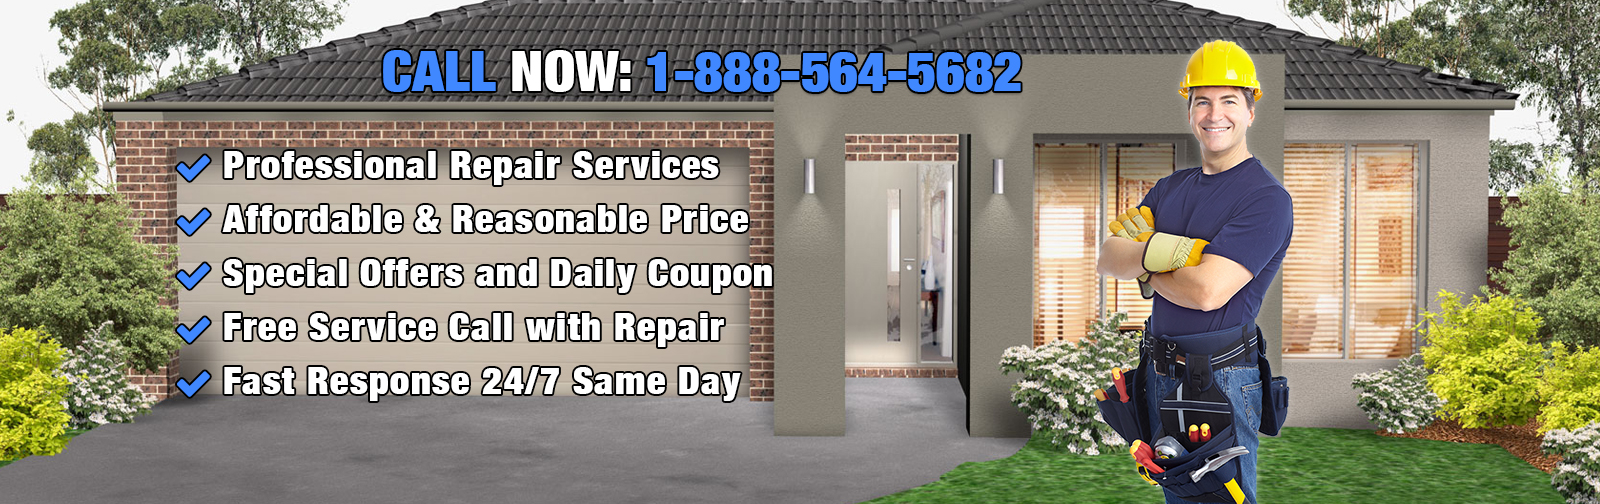 Ae Garage Door Repair Commerce City 720 336 4628